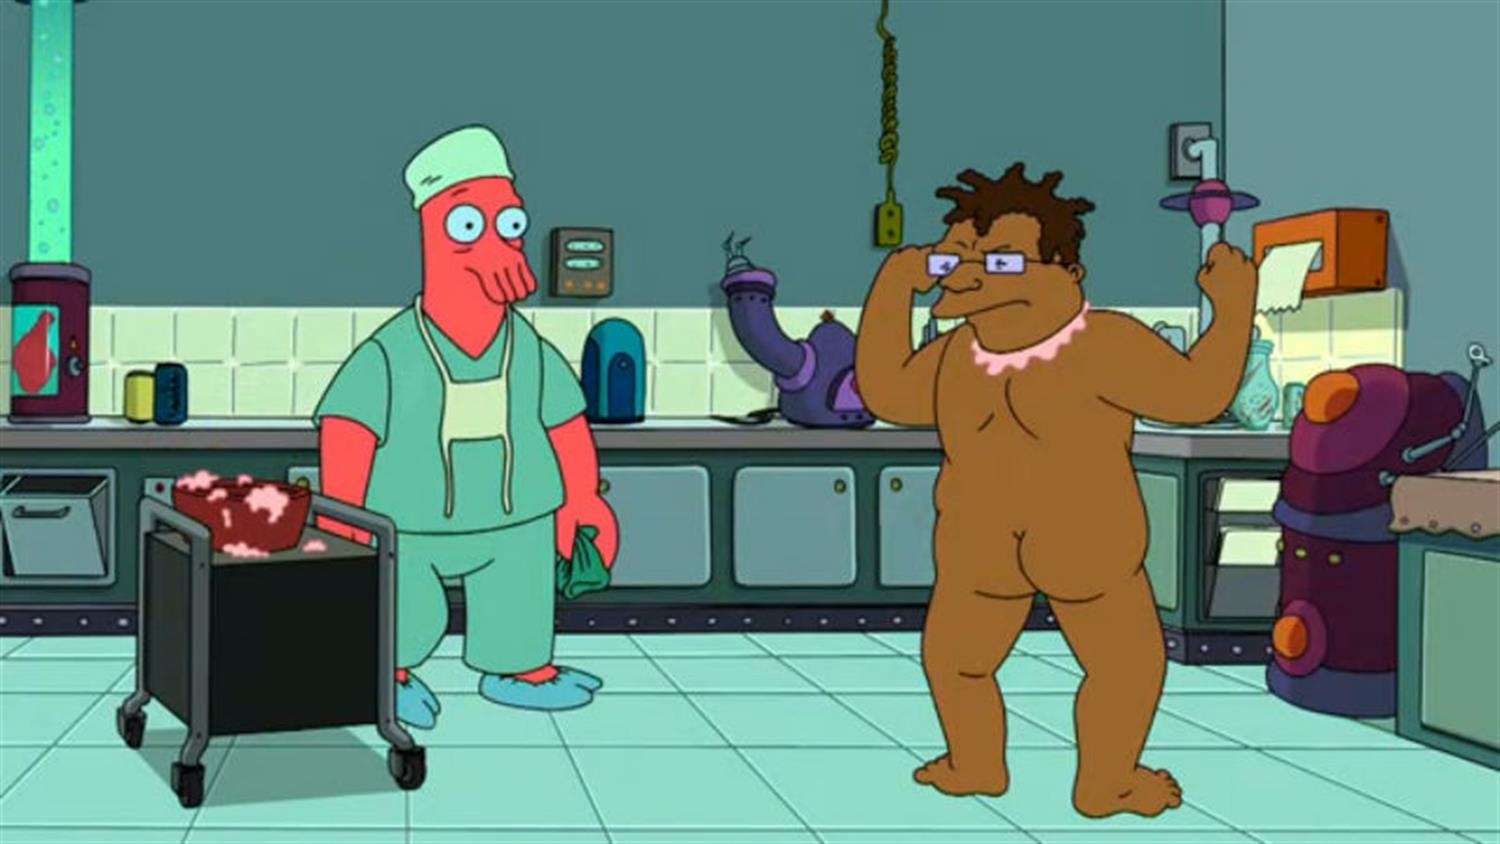 Zoidberg the Surgeon